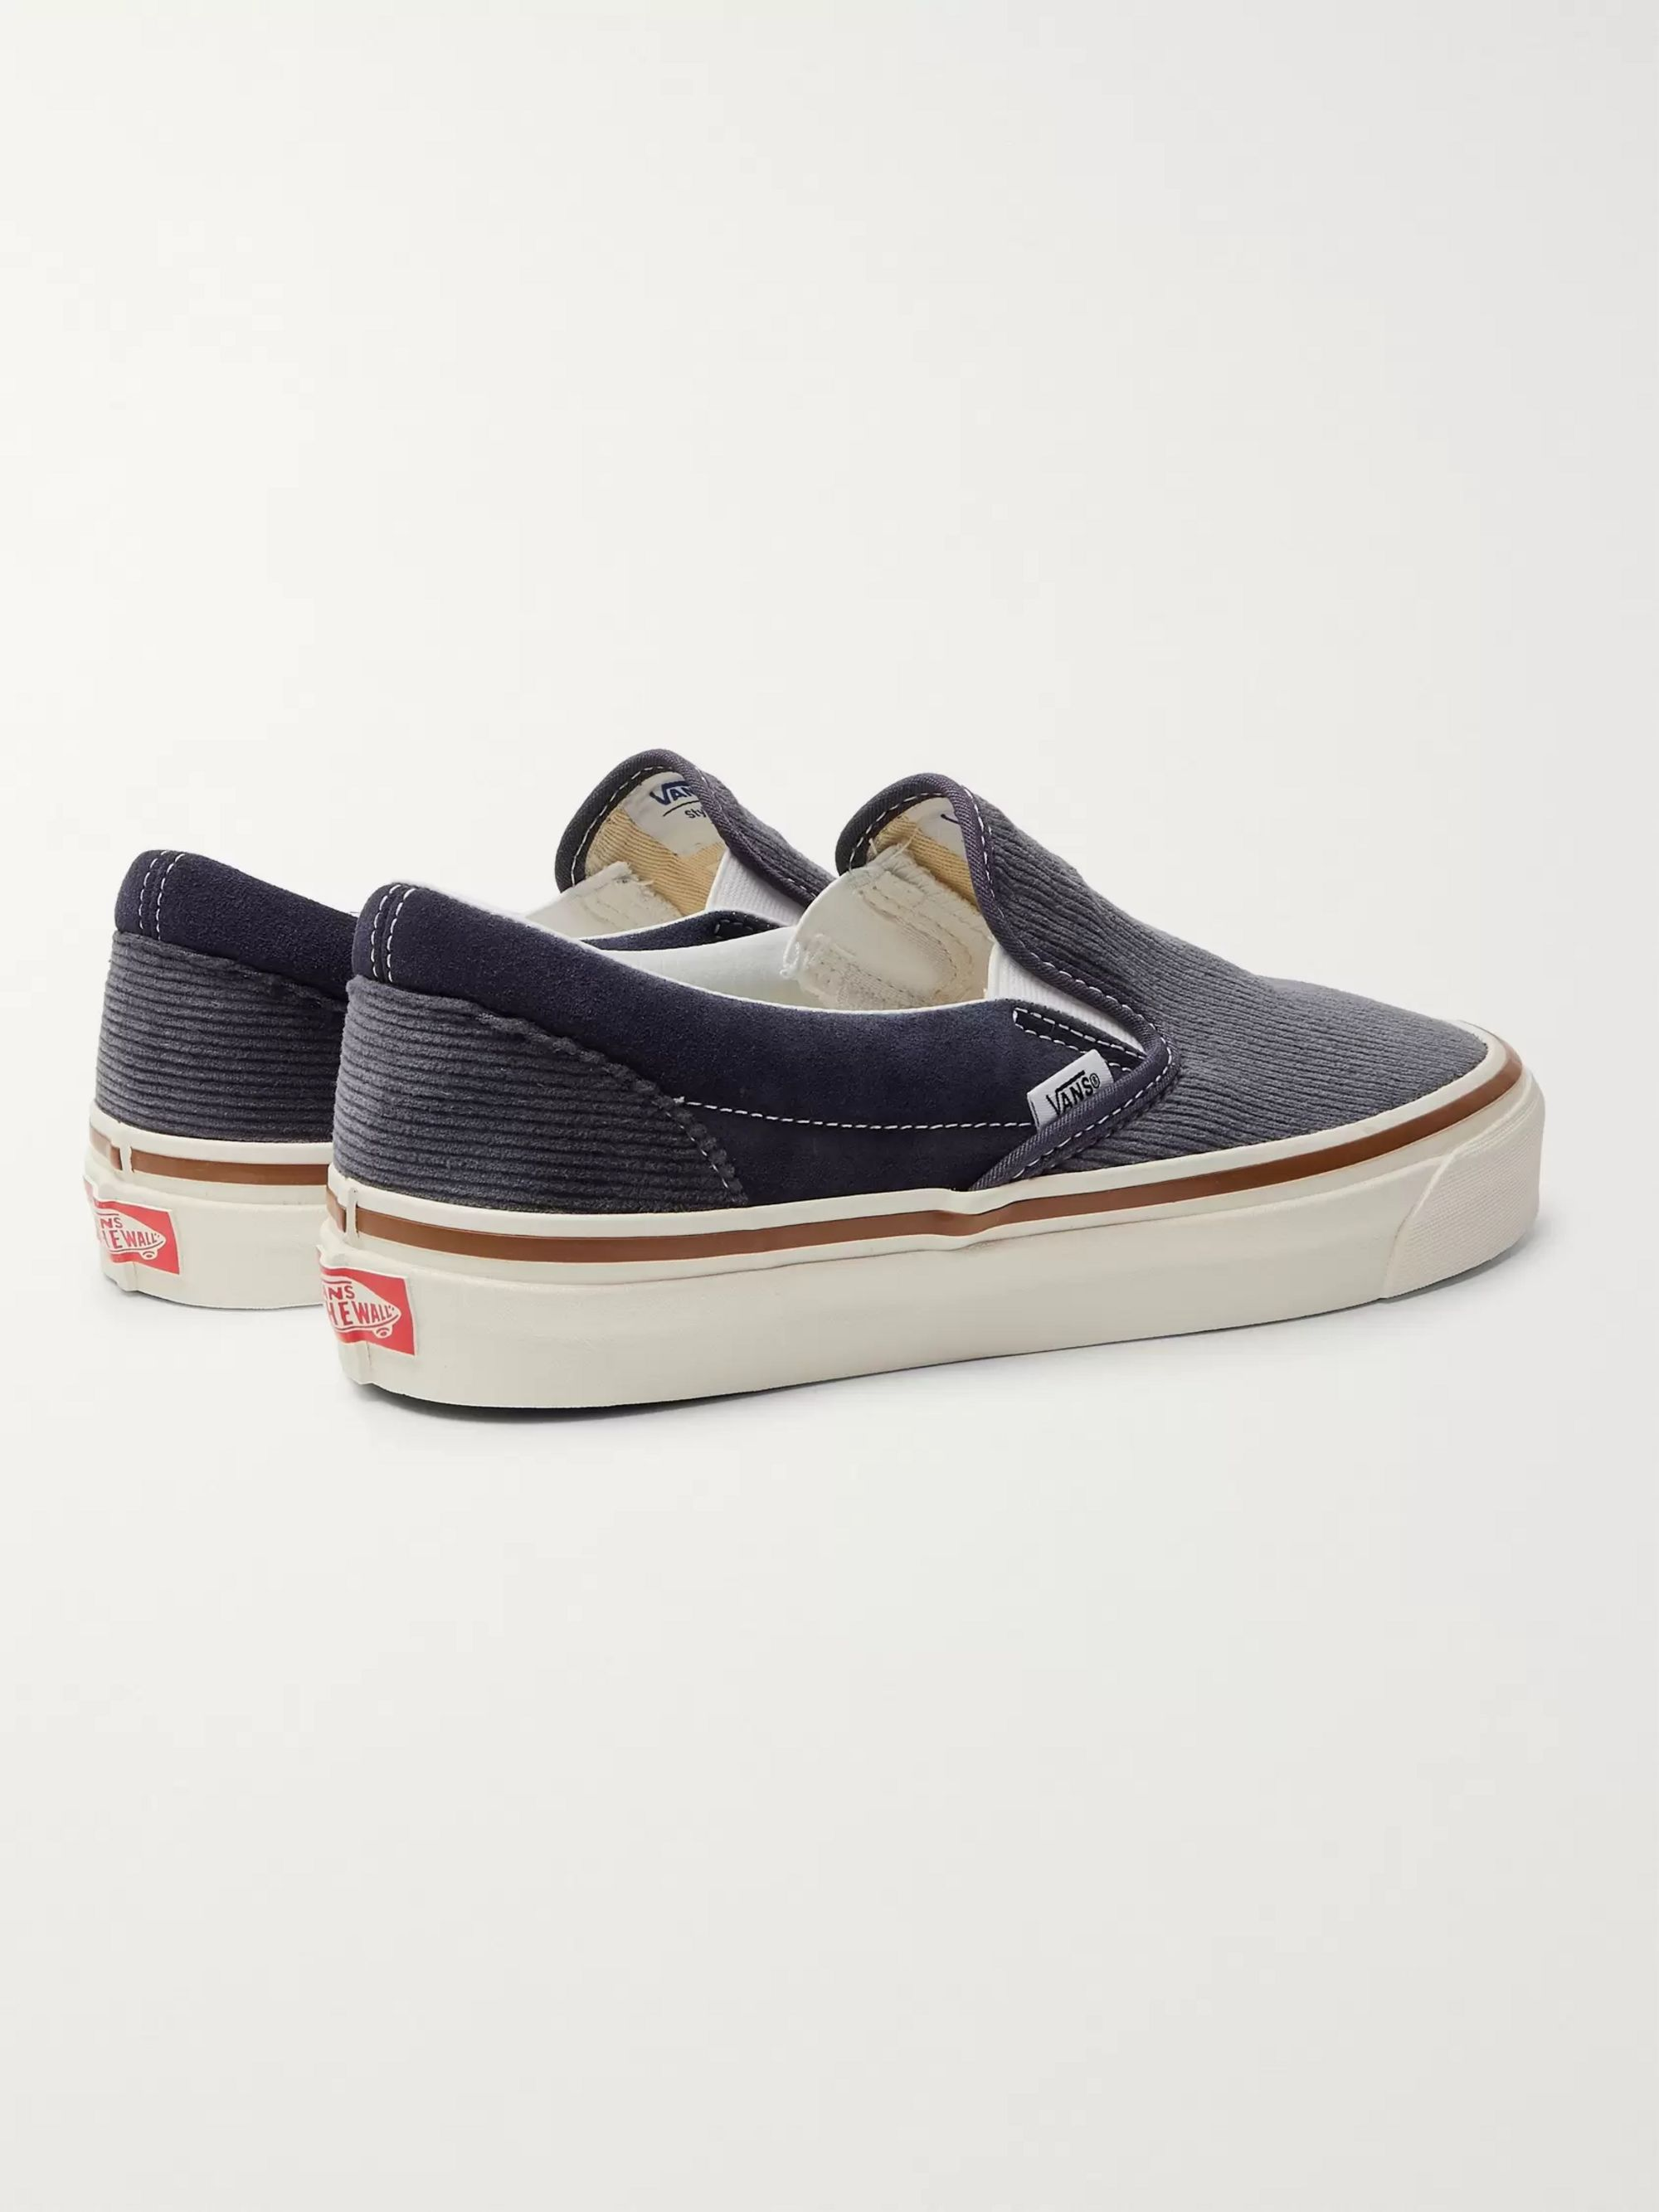 Vans OG 98 DX Cotton-Corduroy and Suede Slip-On Sneakers